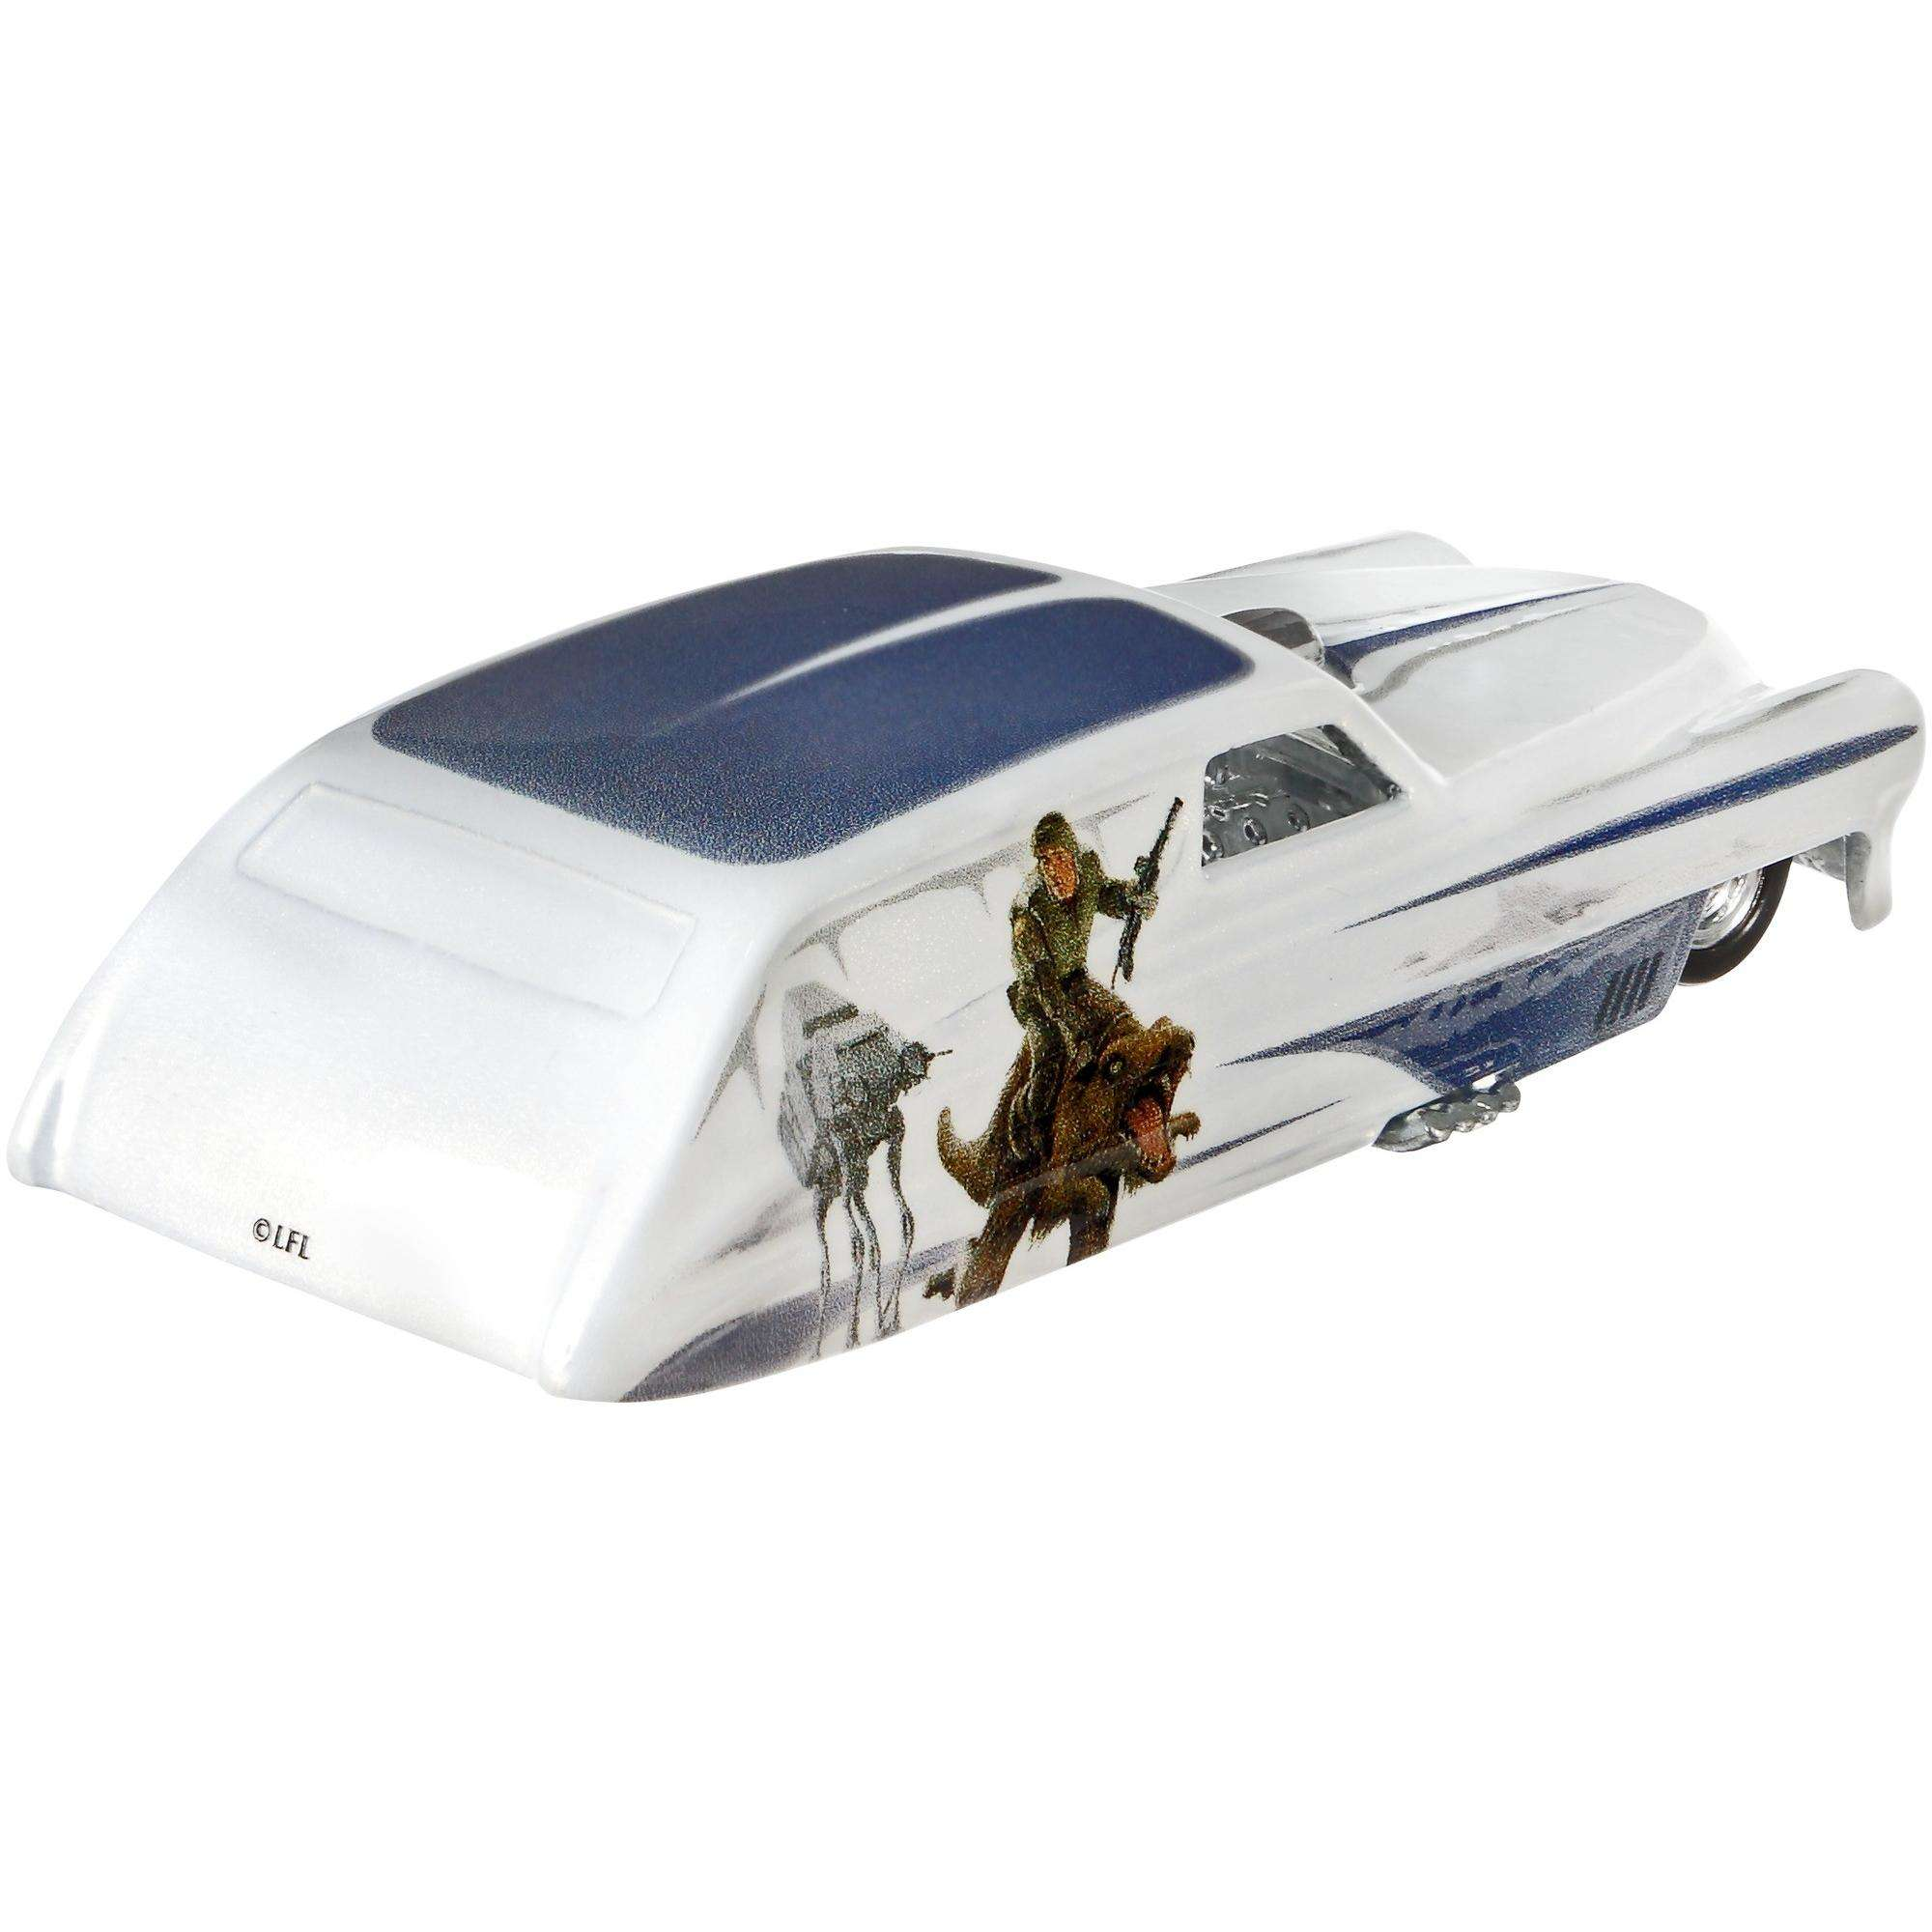 SW HW Rolling Thunder Die-Cast Vehicle Car Toy 3